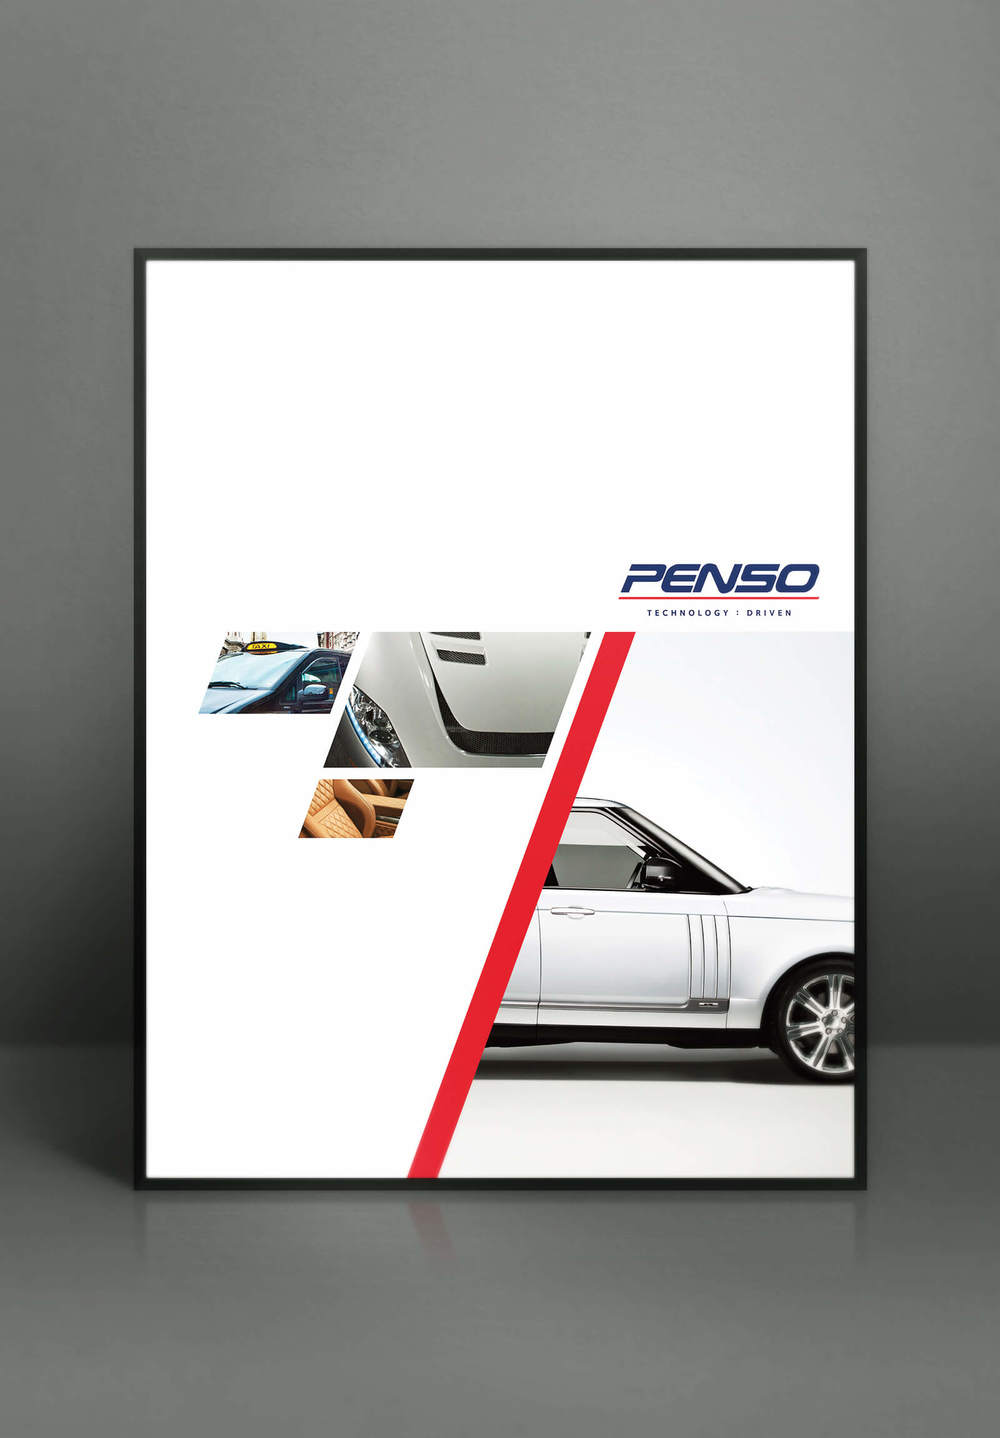 A beautiful, clean design to demonstrate the new visual langauge of the Penso branding completed by Create Onsight.